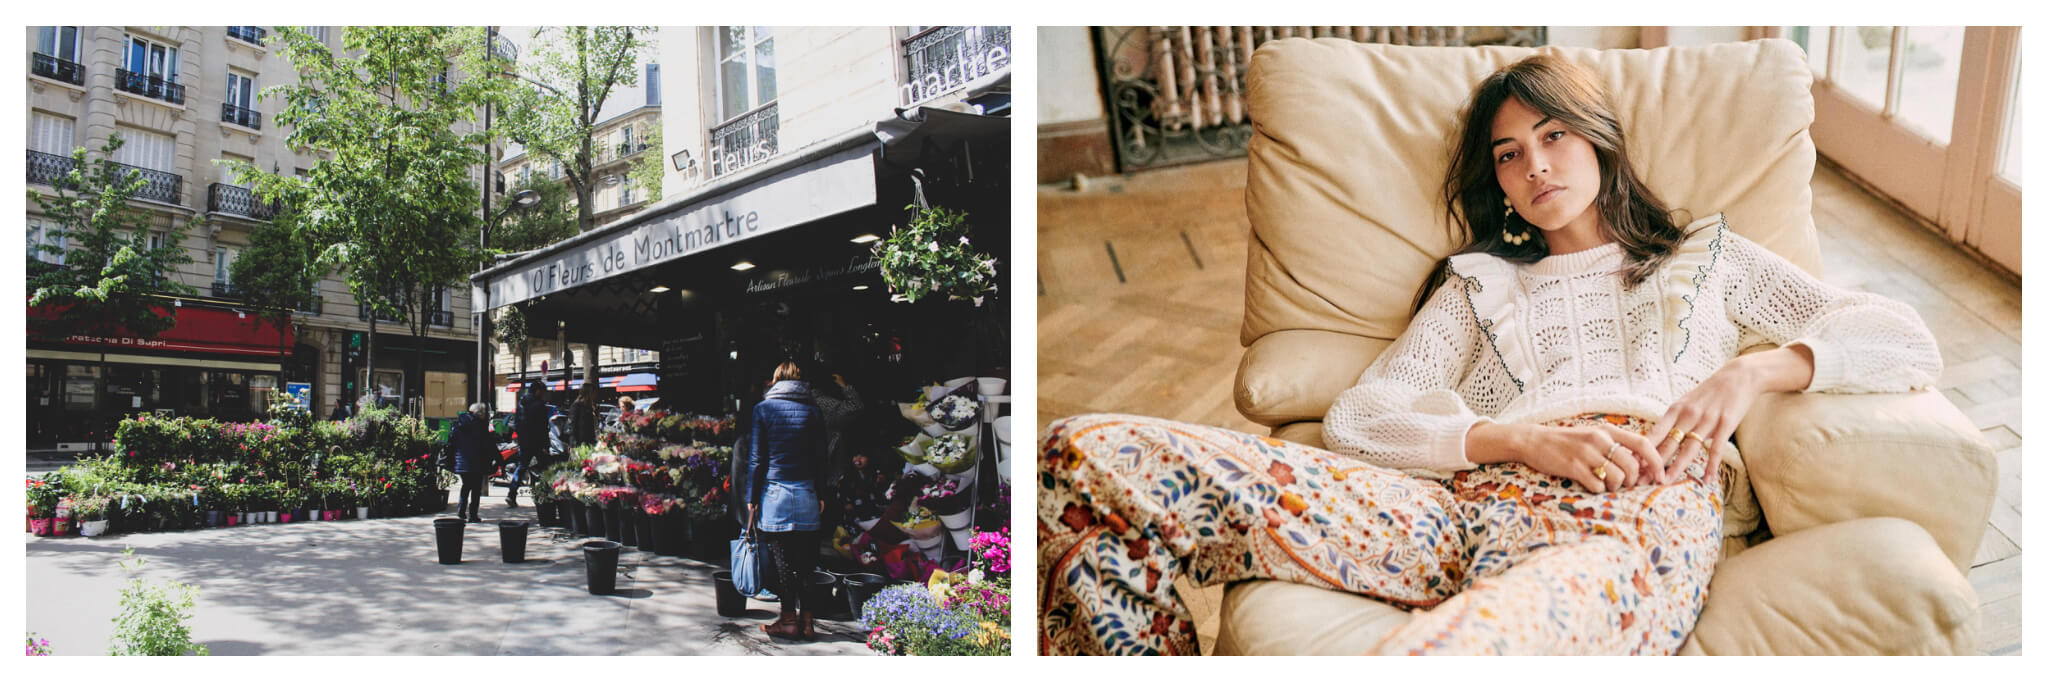 Left, flower shop in Paris springtime. Right, a girl sprawled in a leather armchair wearing  Sézane outfit in Paris.